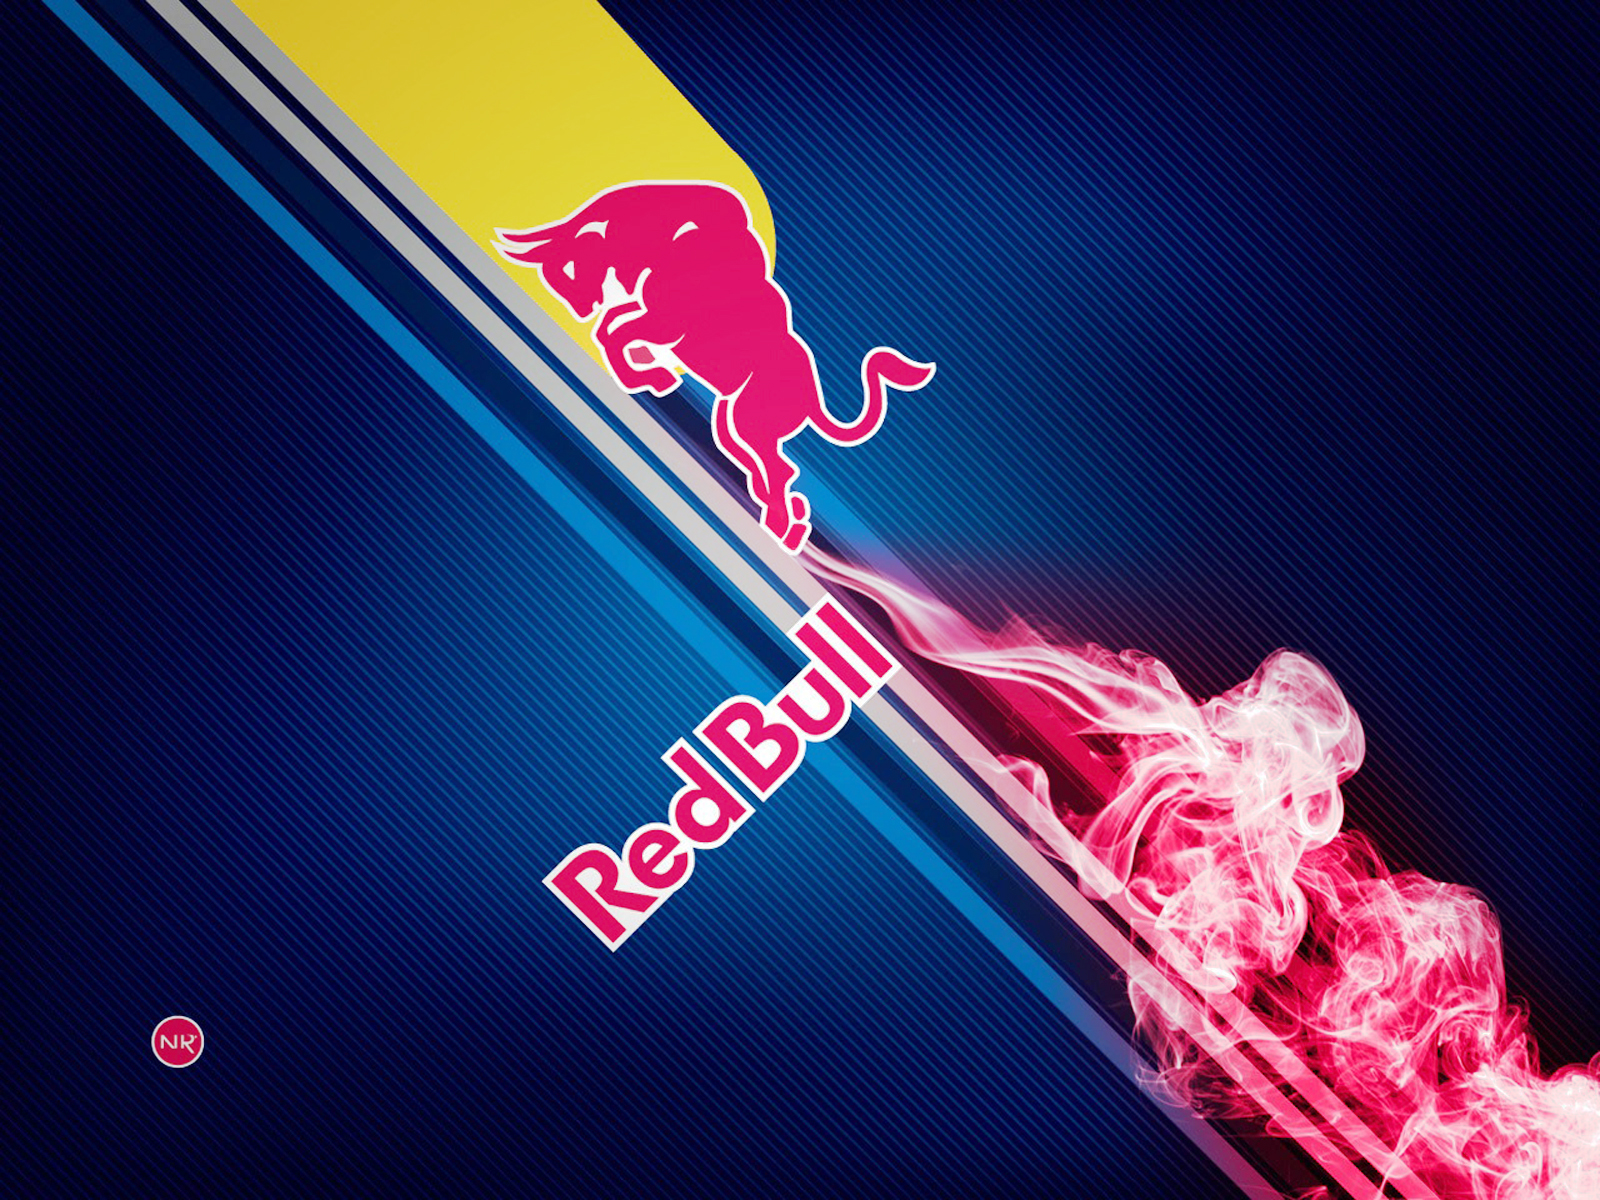 Red Bull HD Logo Wallpapers Download Wallpapers in HD for your 1600x1200